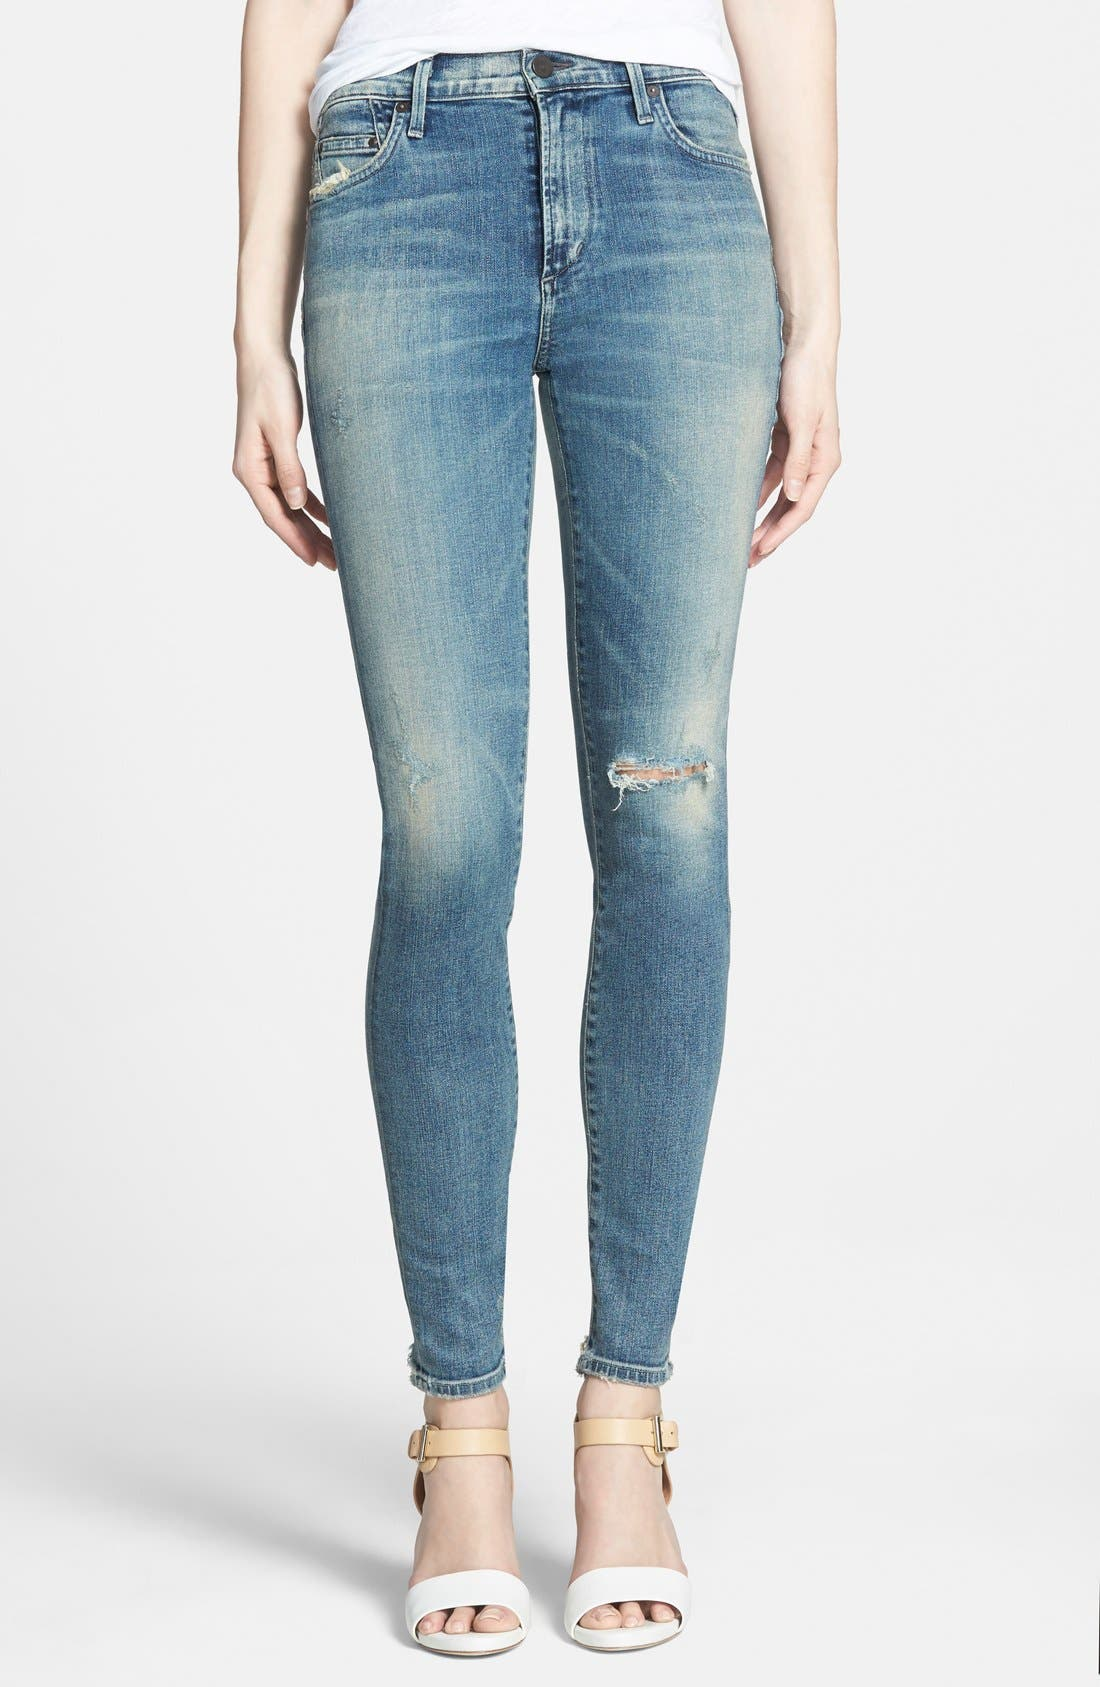 Main Image - Citizens of Humanity 'Rocket' High Rise Skinny Jeans (Stage Coach)